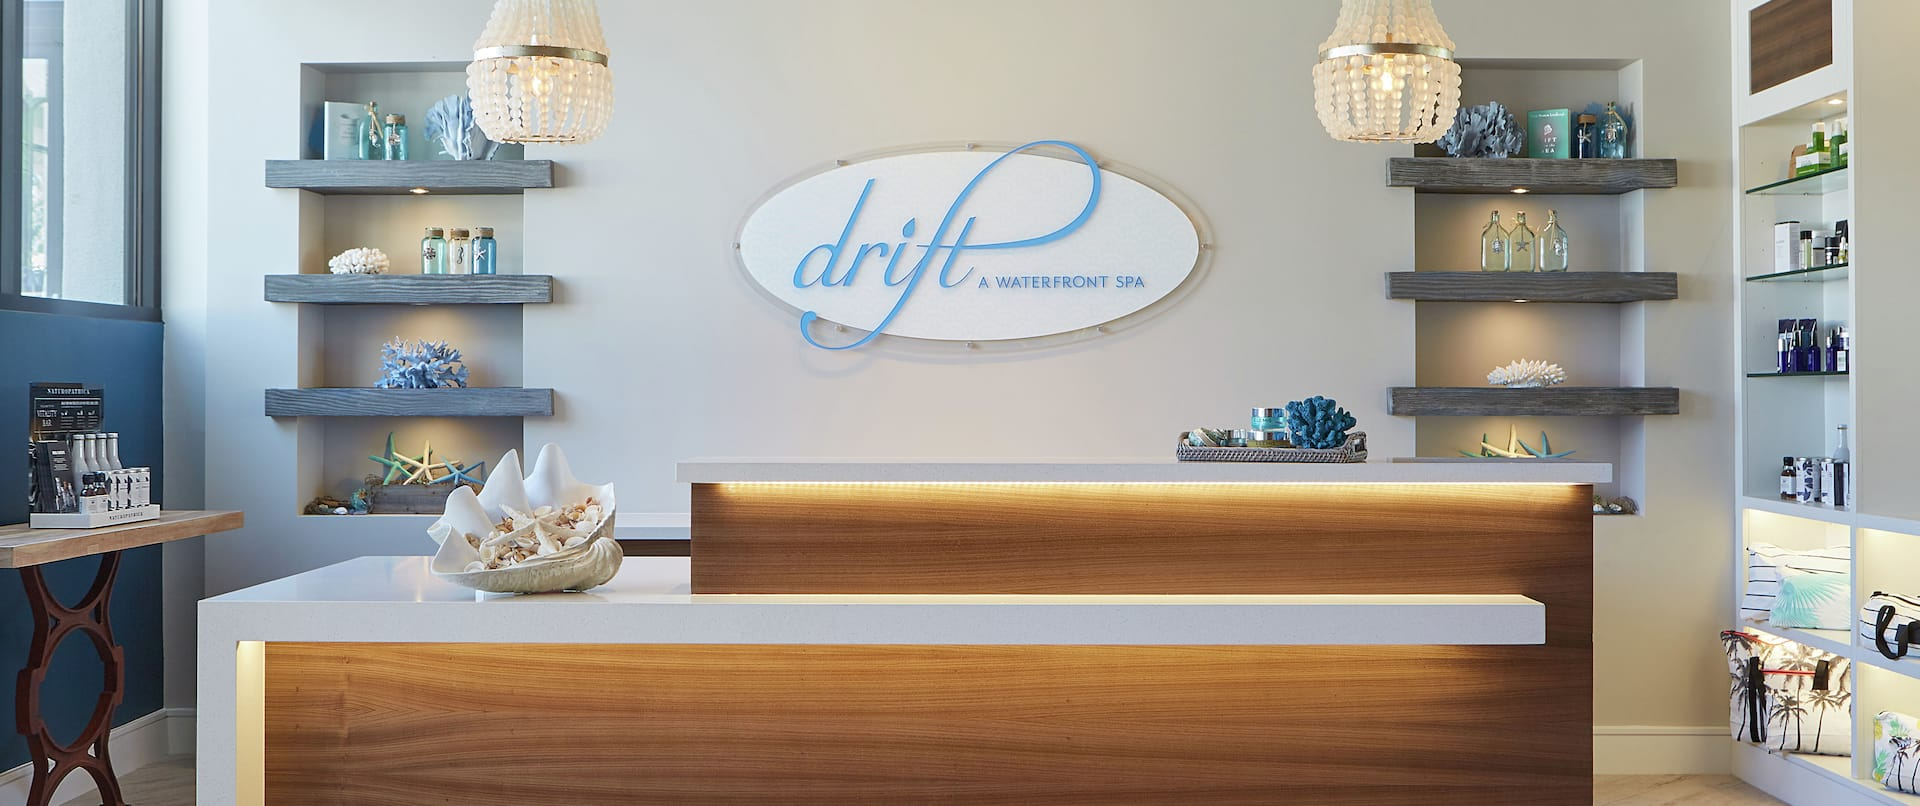 Spa front desk with products on shelves, outside view